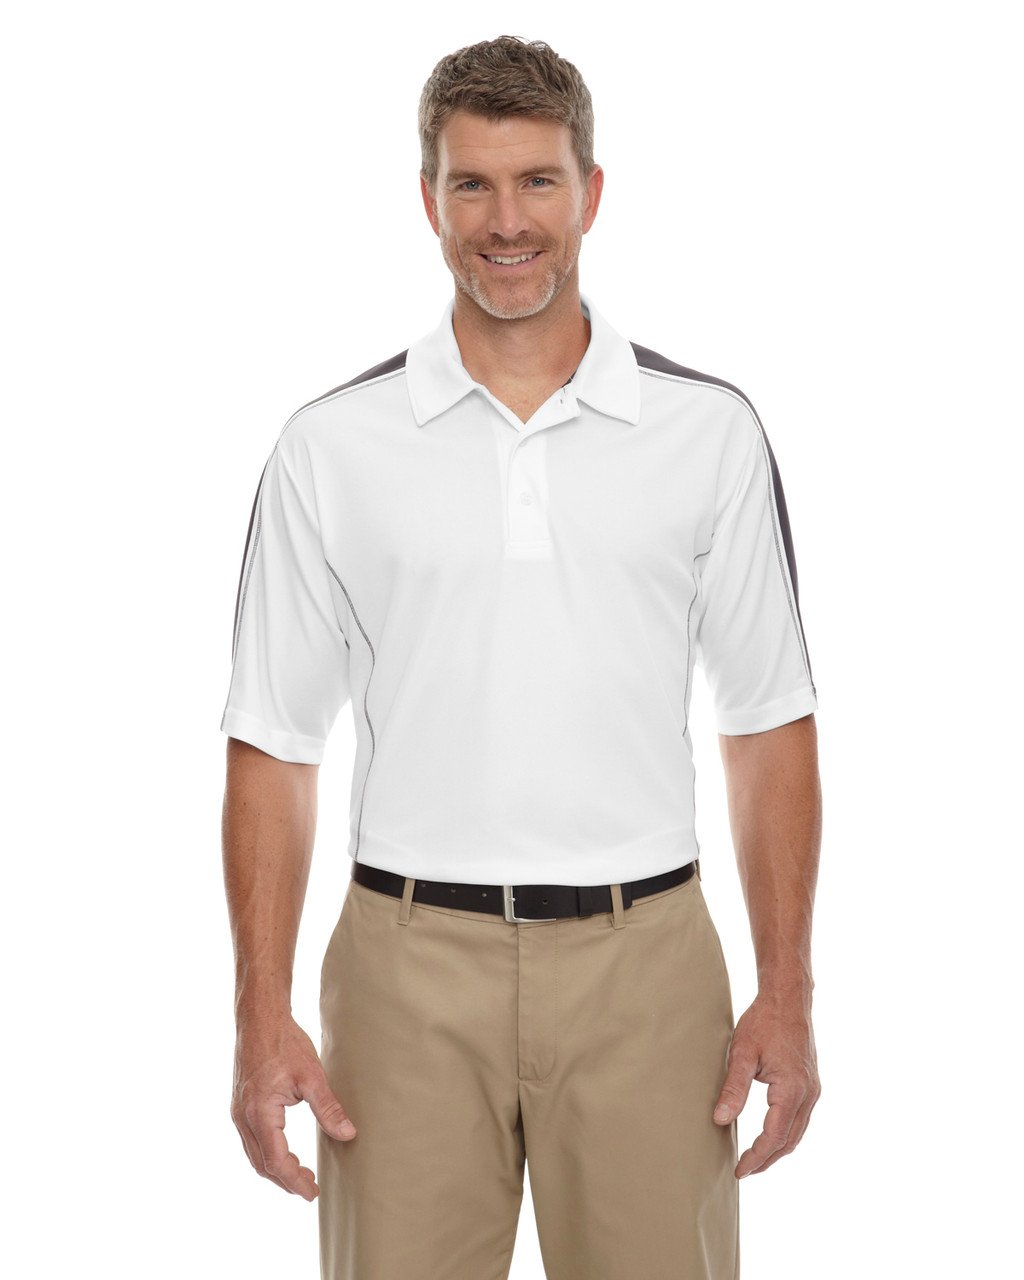 White/ Black Silk - 85089 Extreme Men's Eperformance Pique Color-Block Polo Shirt | BlankClothing.ca